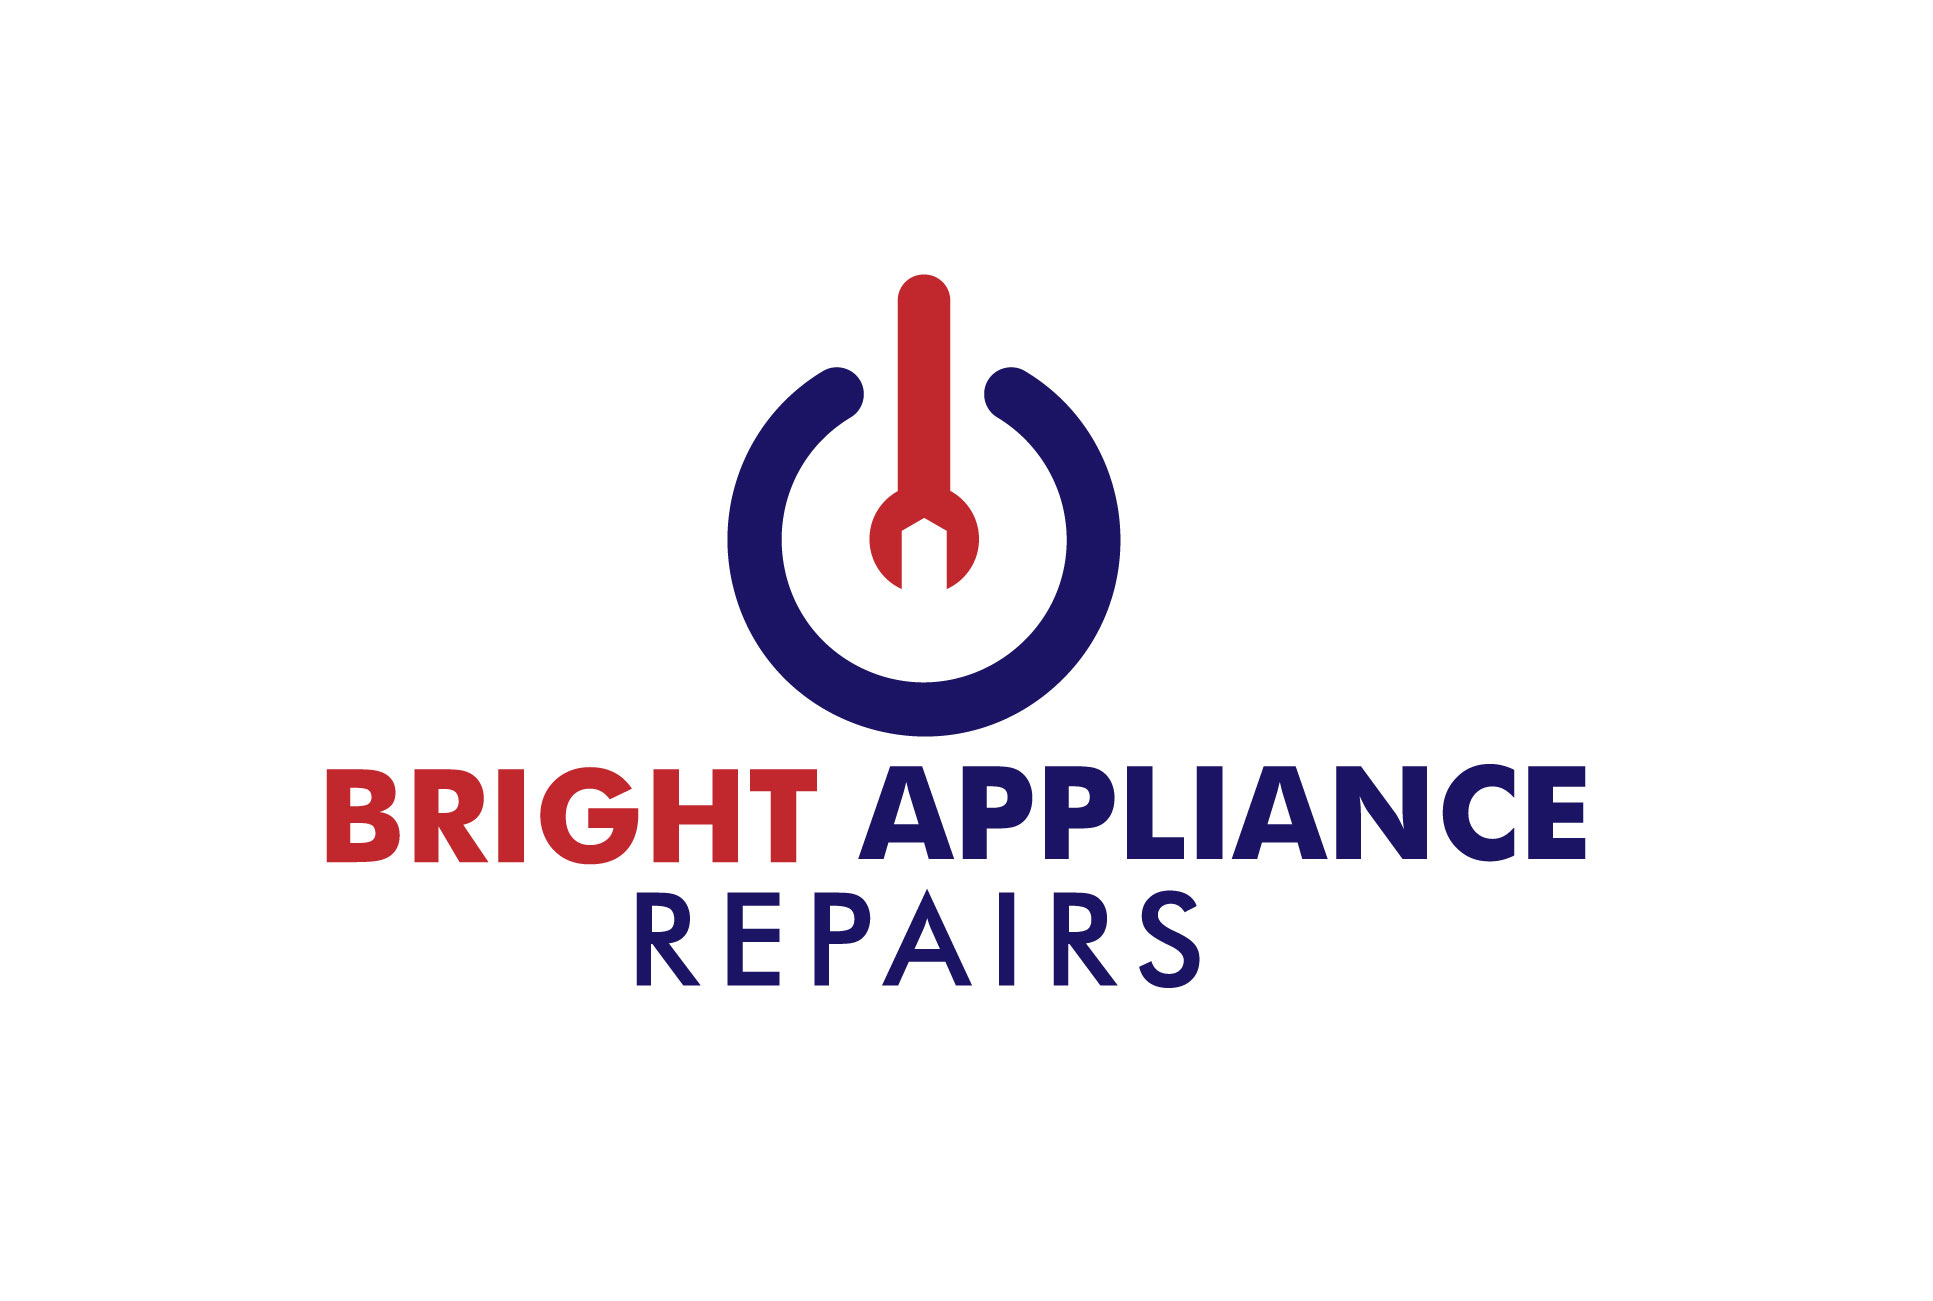 Bright Appliance Repairs